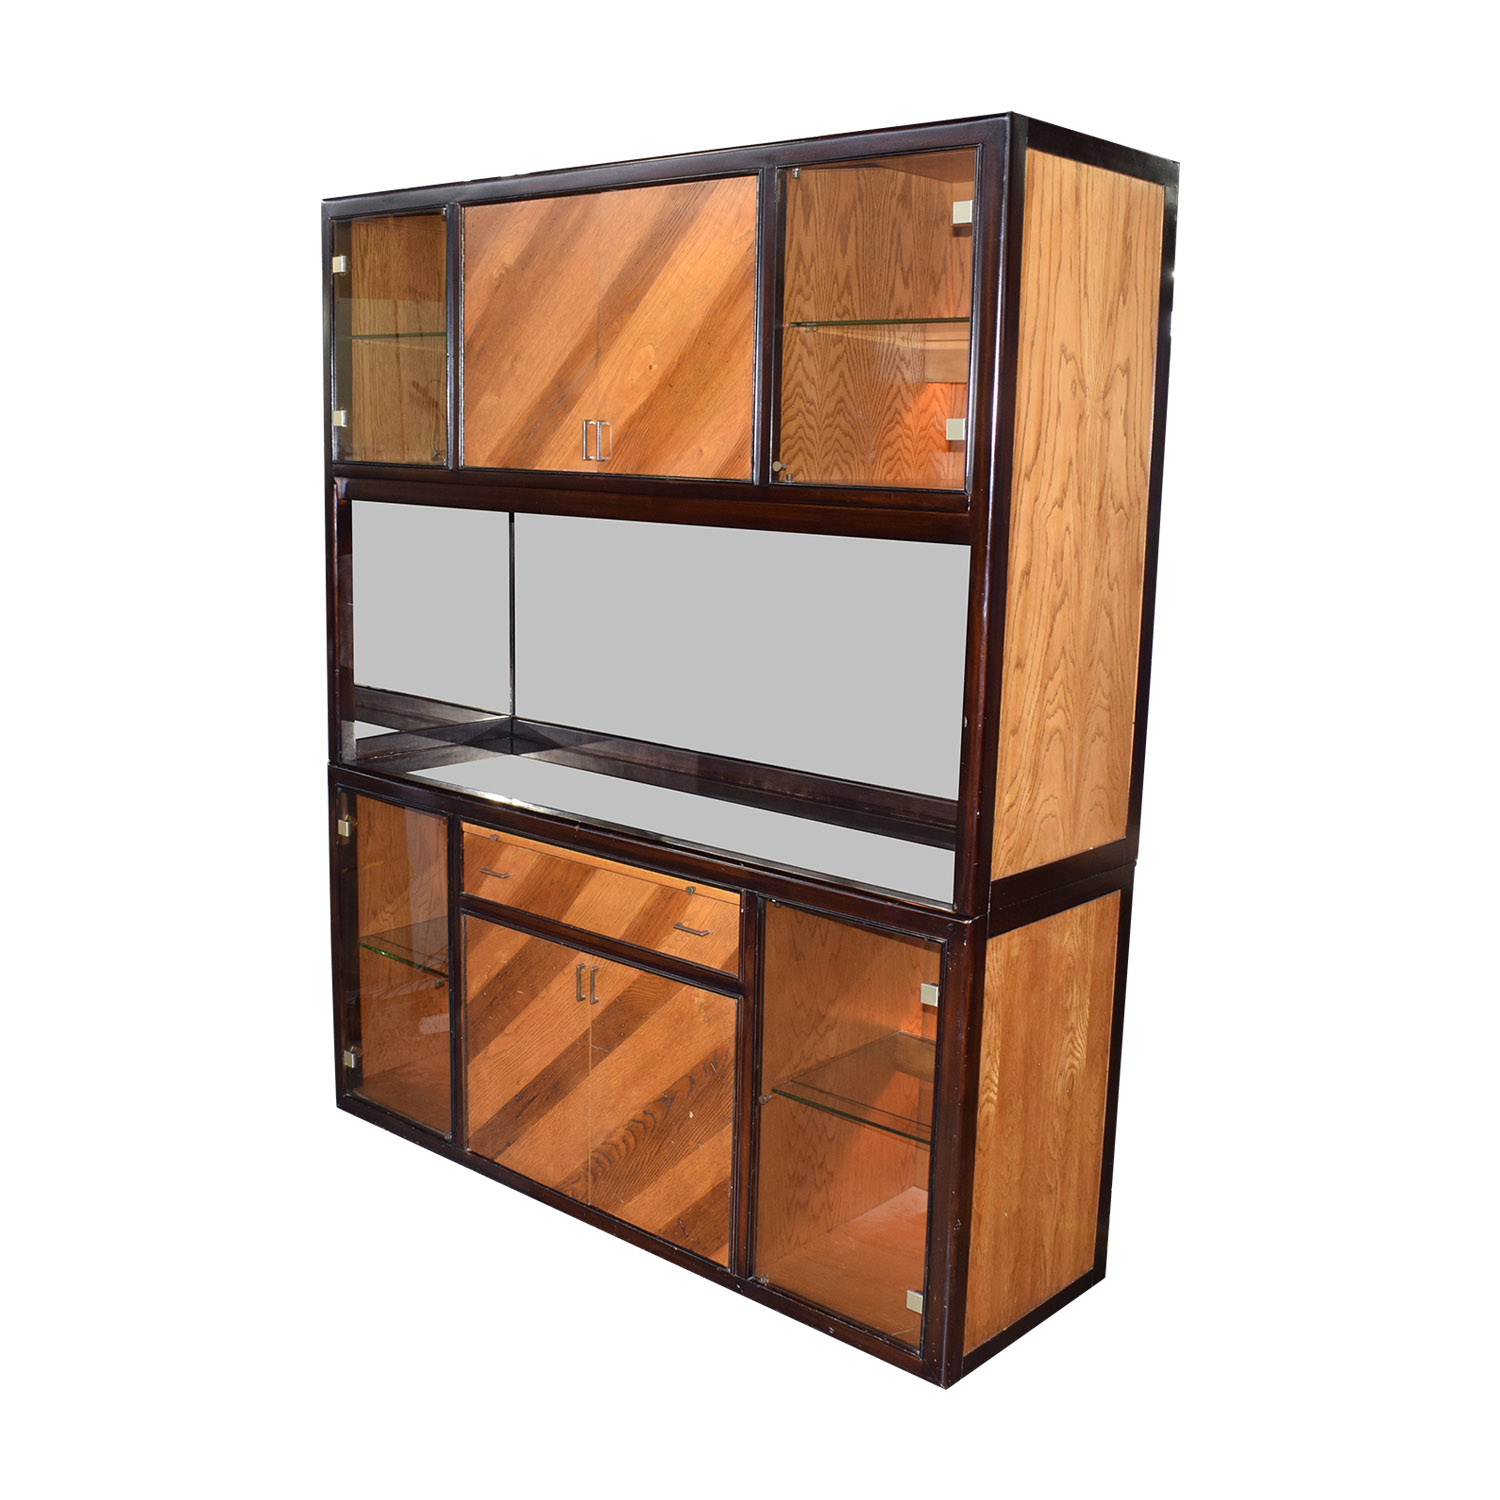 Peck and Hills Furniture Peck and Hills Furniture Wood and Glass Mirrored Breakfront for sale